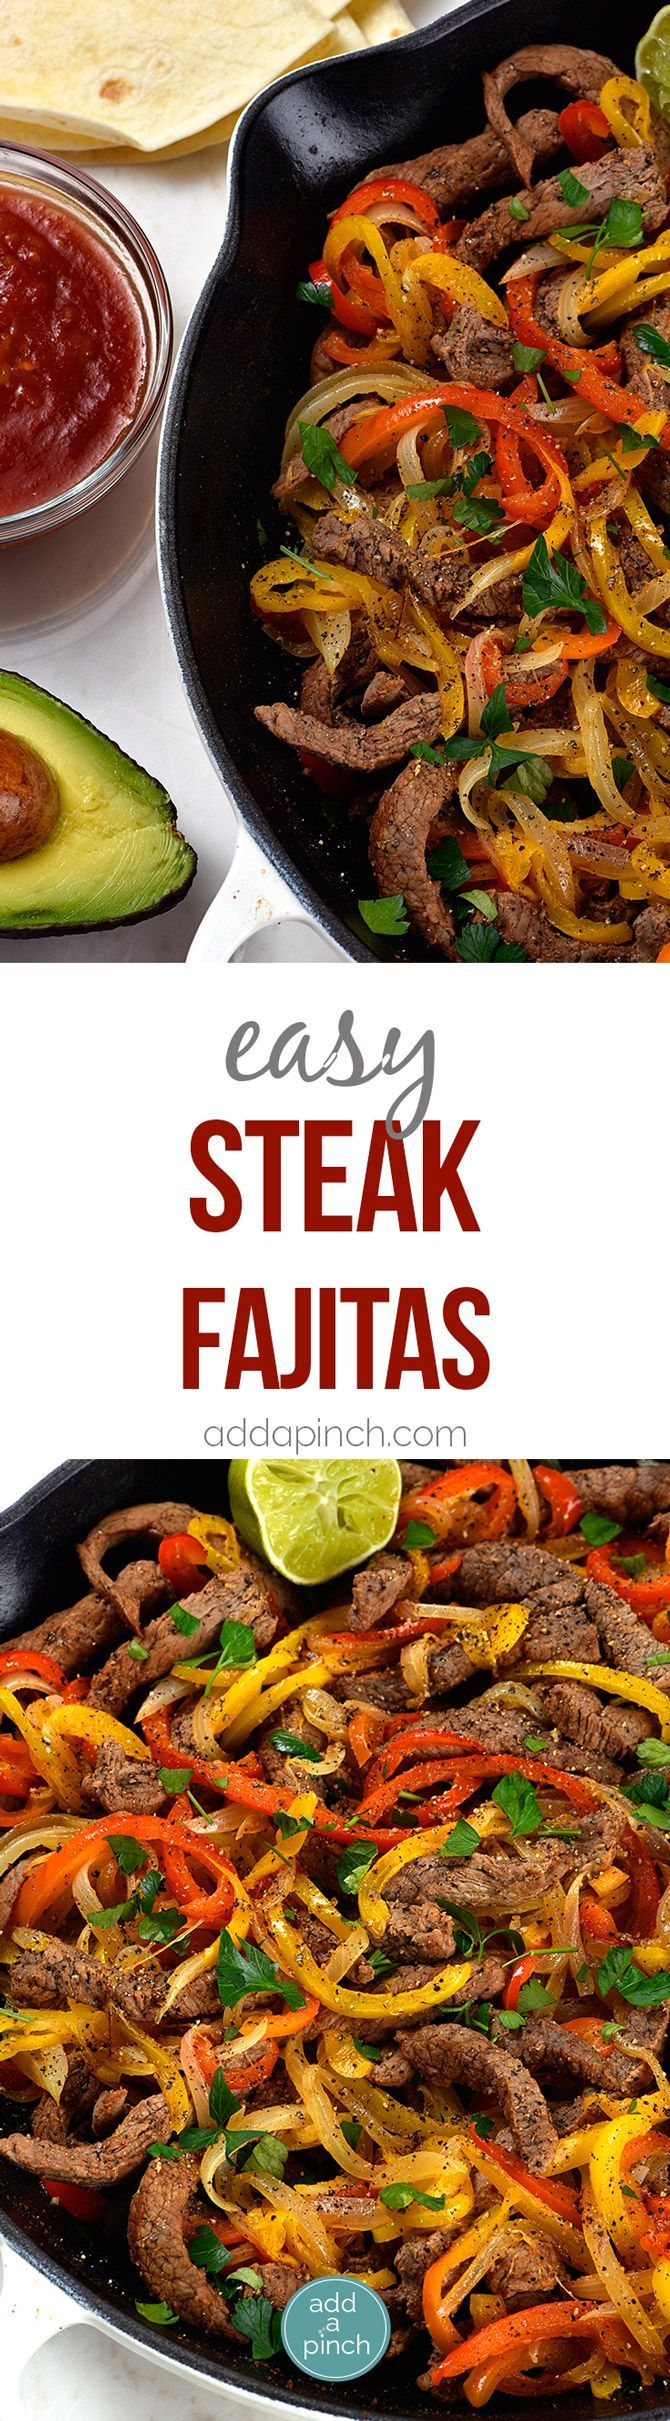 Steak Fajitas Recipe - Steak fajitas make a quick and easy meal perfect for weeknight suppers or weekend celebrations! Made with beef, peppers, onions and served with a stack of warm tortillas and condiments. They are always a favorite! // addapinch.com #steakfajitarecipe